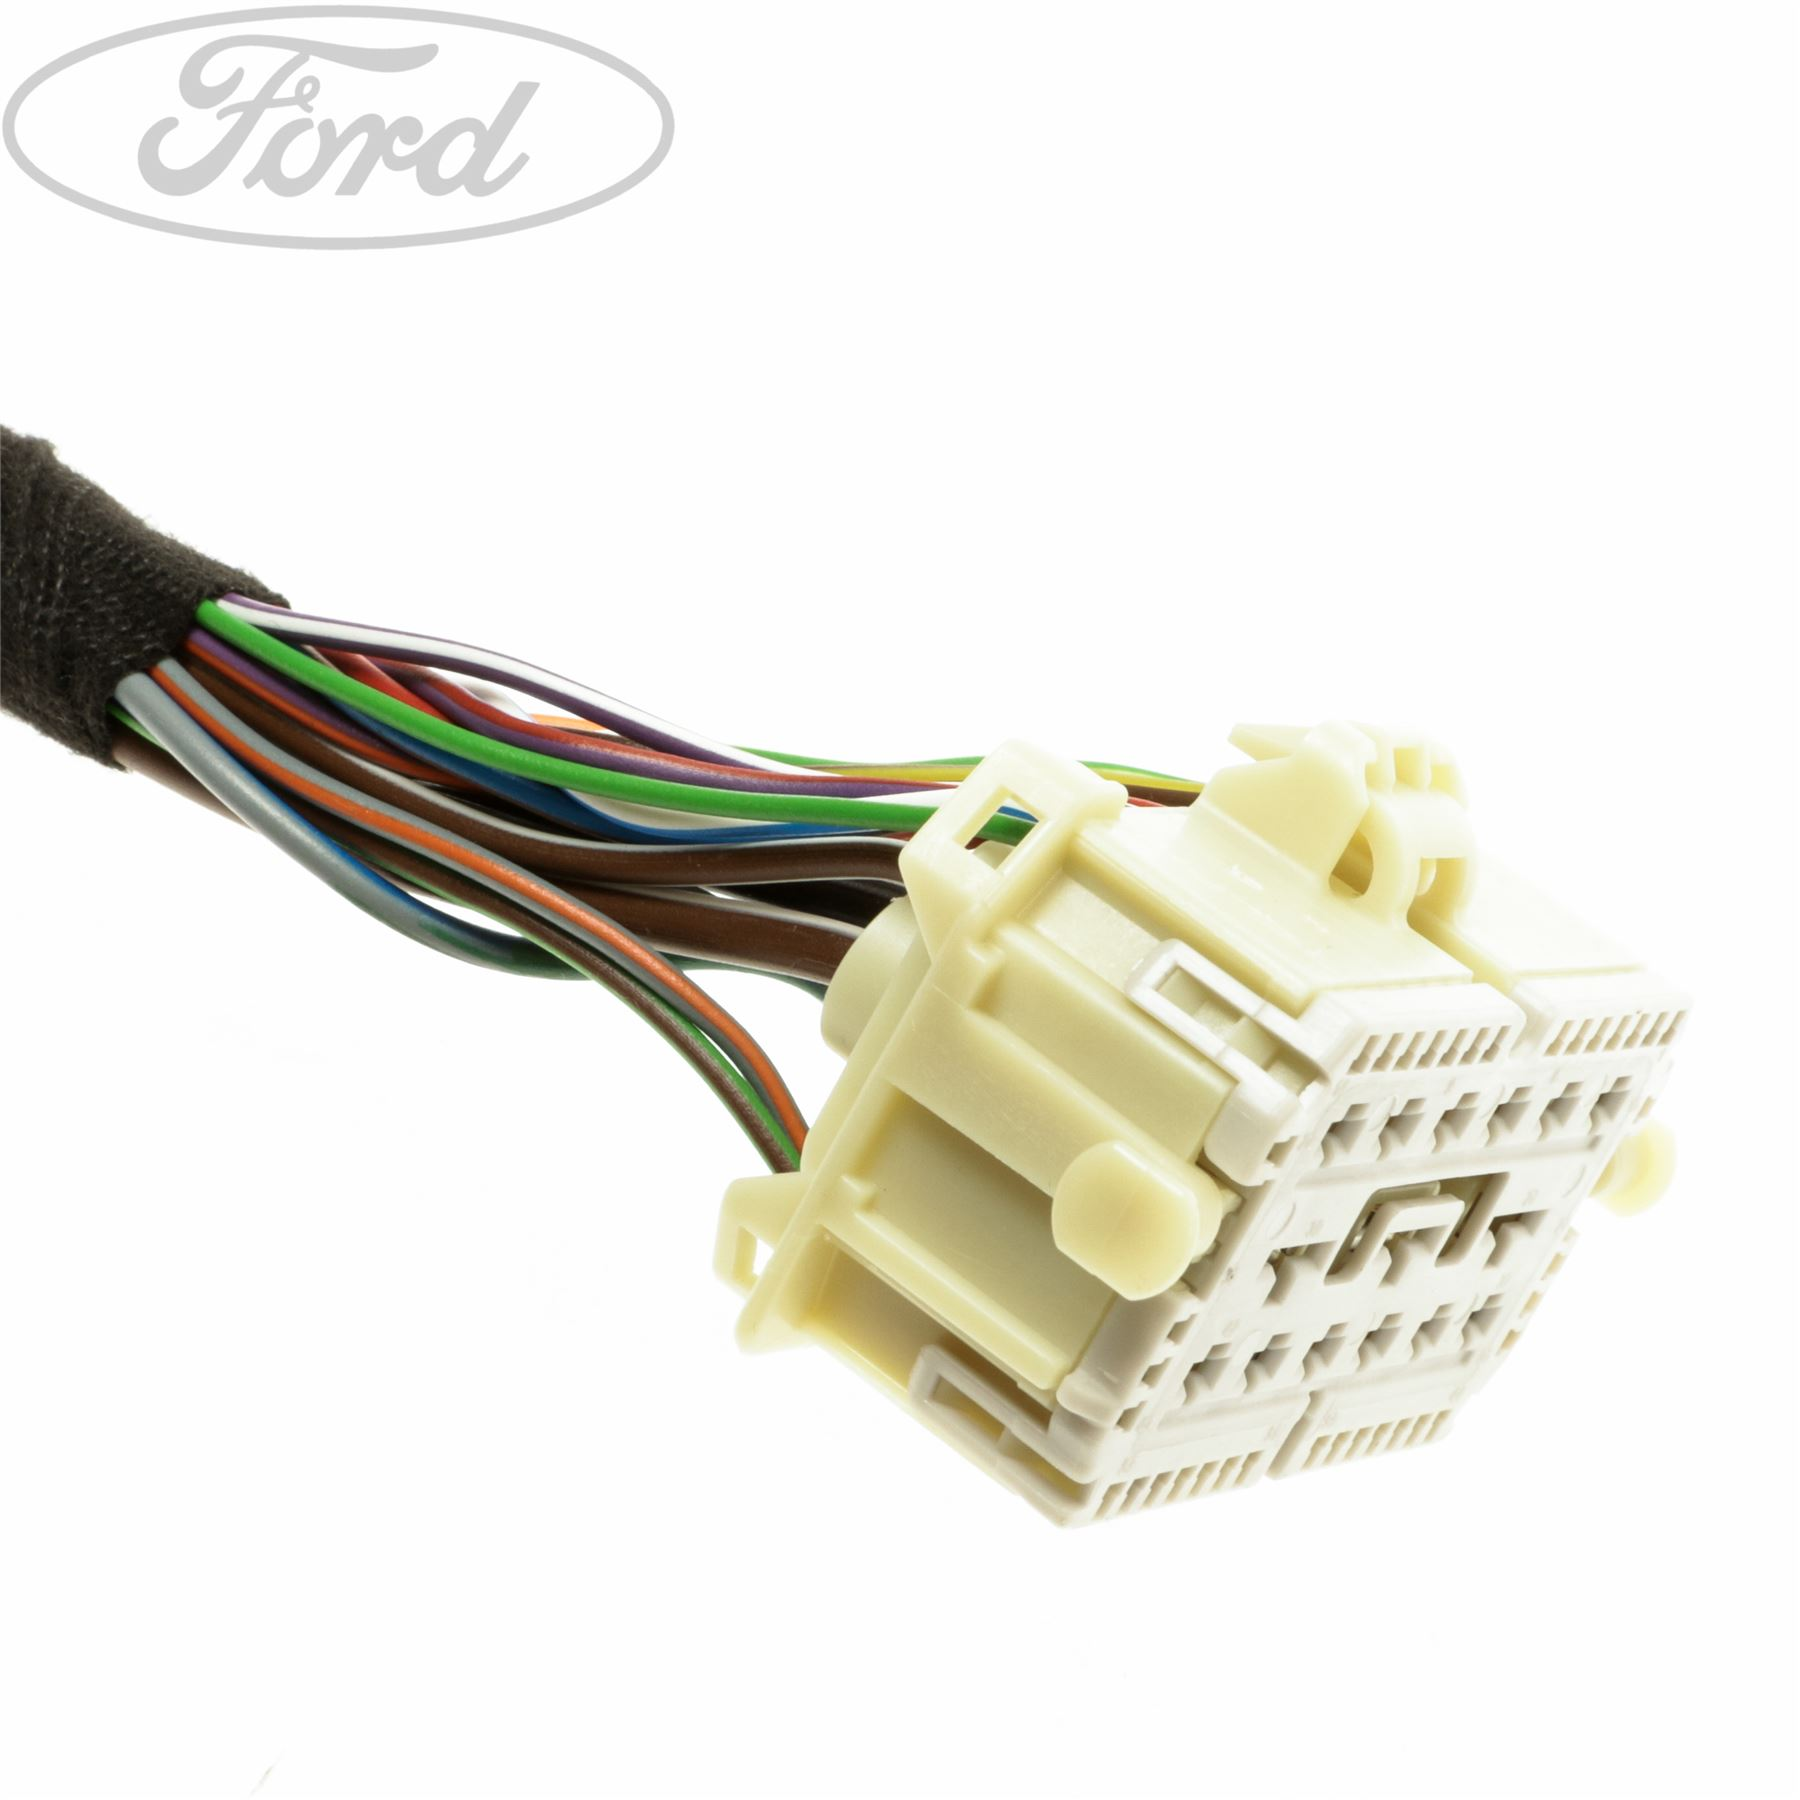 Ford Headlight Assembly Wiring - Wiring Diagram